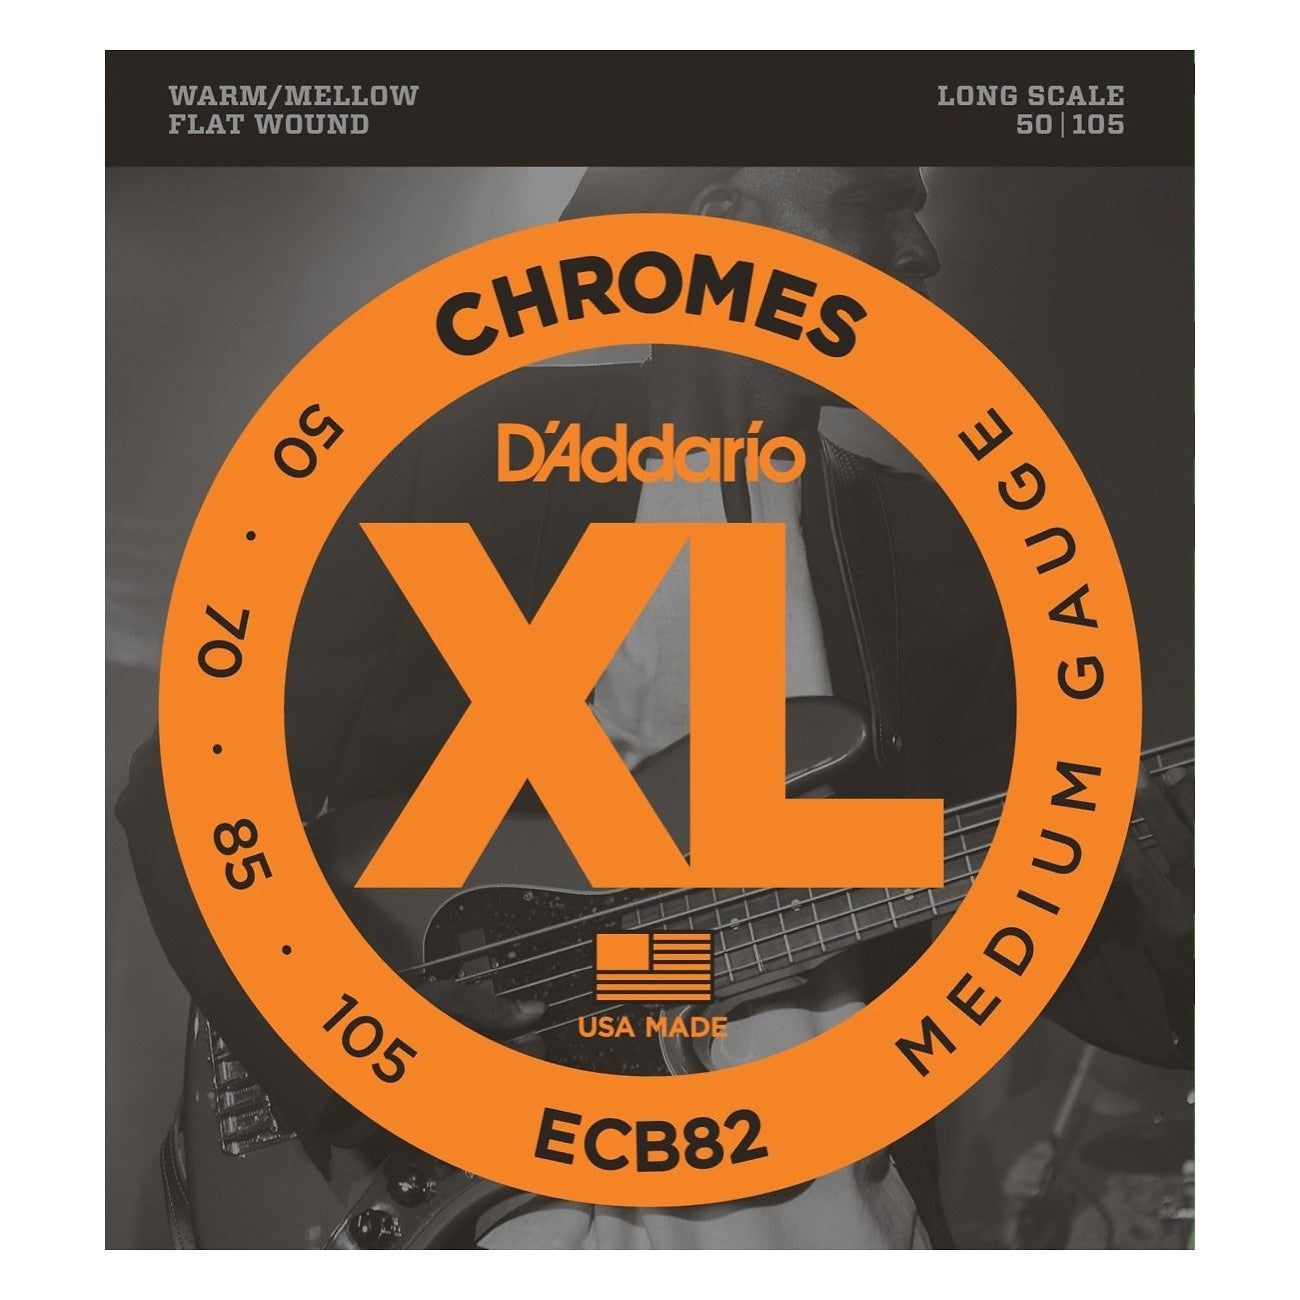 D'Addario ECB82 Chromes Flatwound Bass Strings (Medium Gauge, Long Scale)